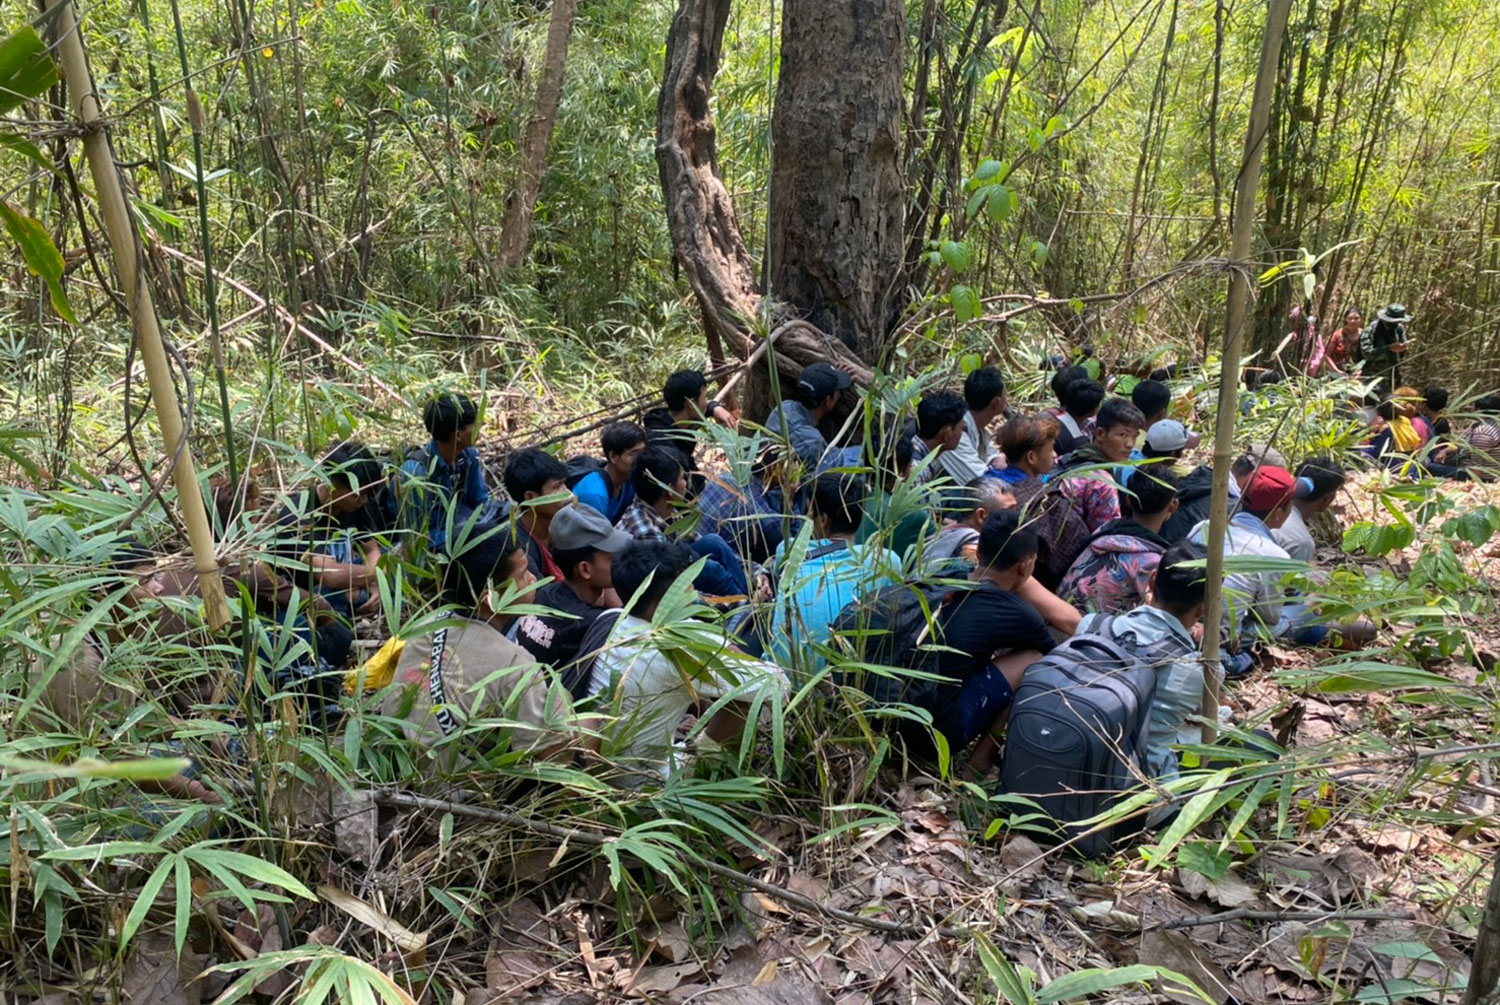 Some of the 59 Myanmar migrants found hiding in a forested area in Sangkhla Buri district of Kanchanaburi await transport to a border checkpoint on Saturday. (Photo: Piyarat Chongcharoen)